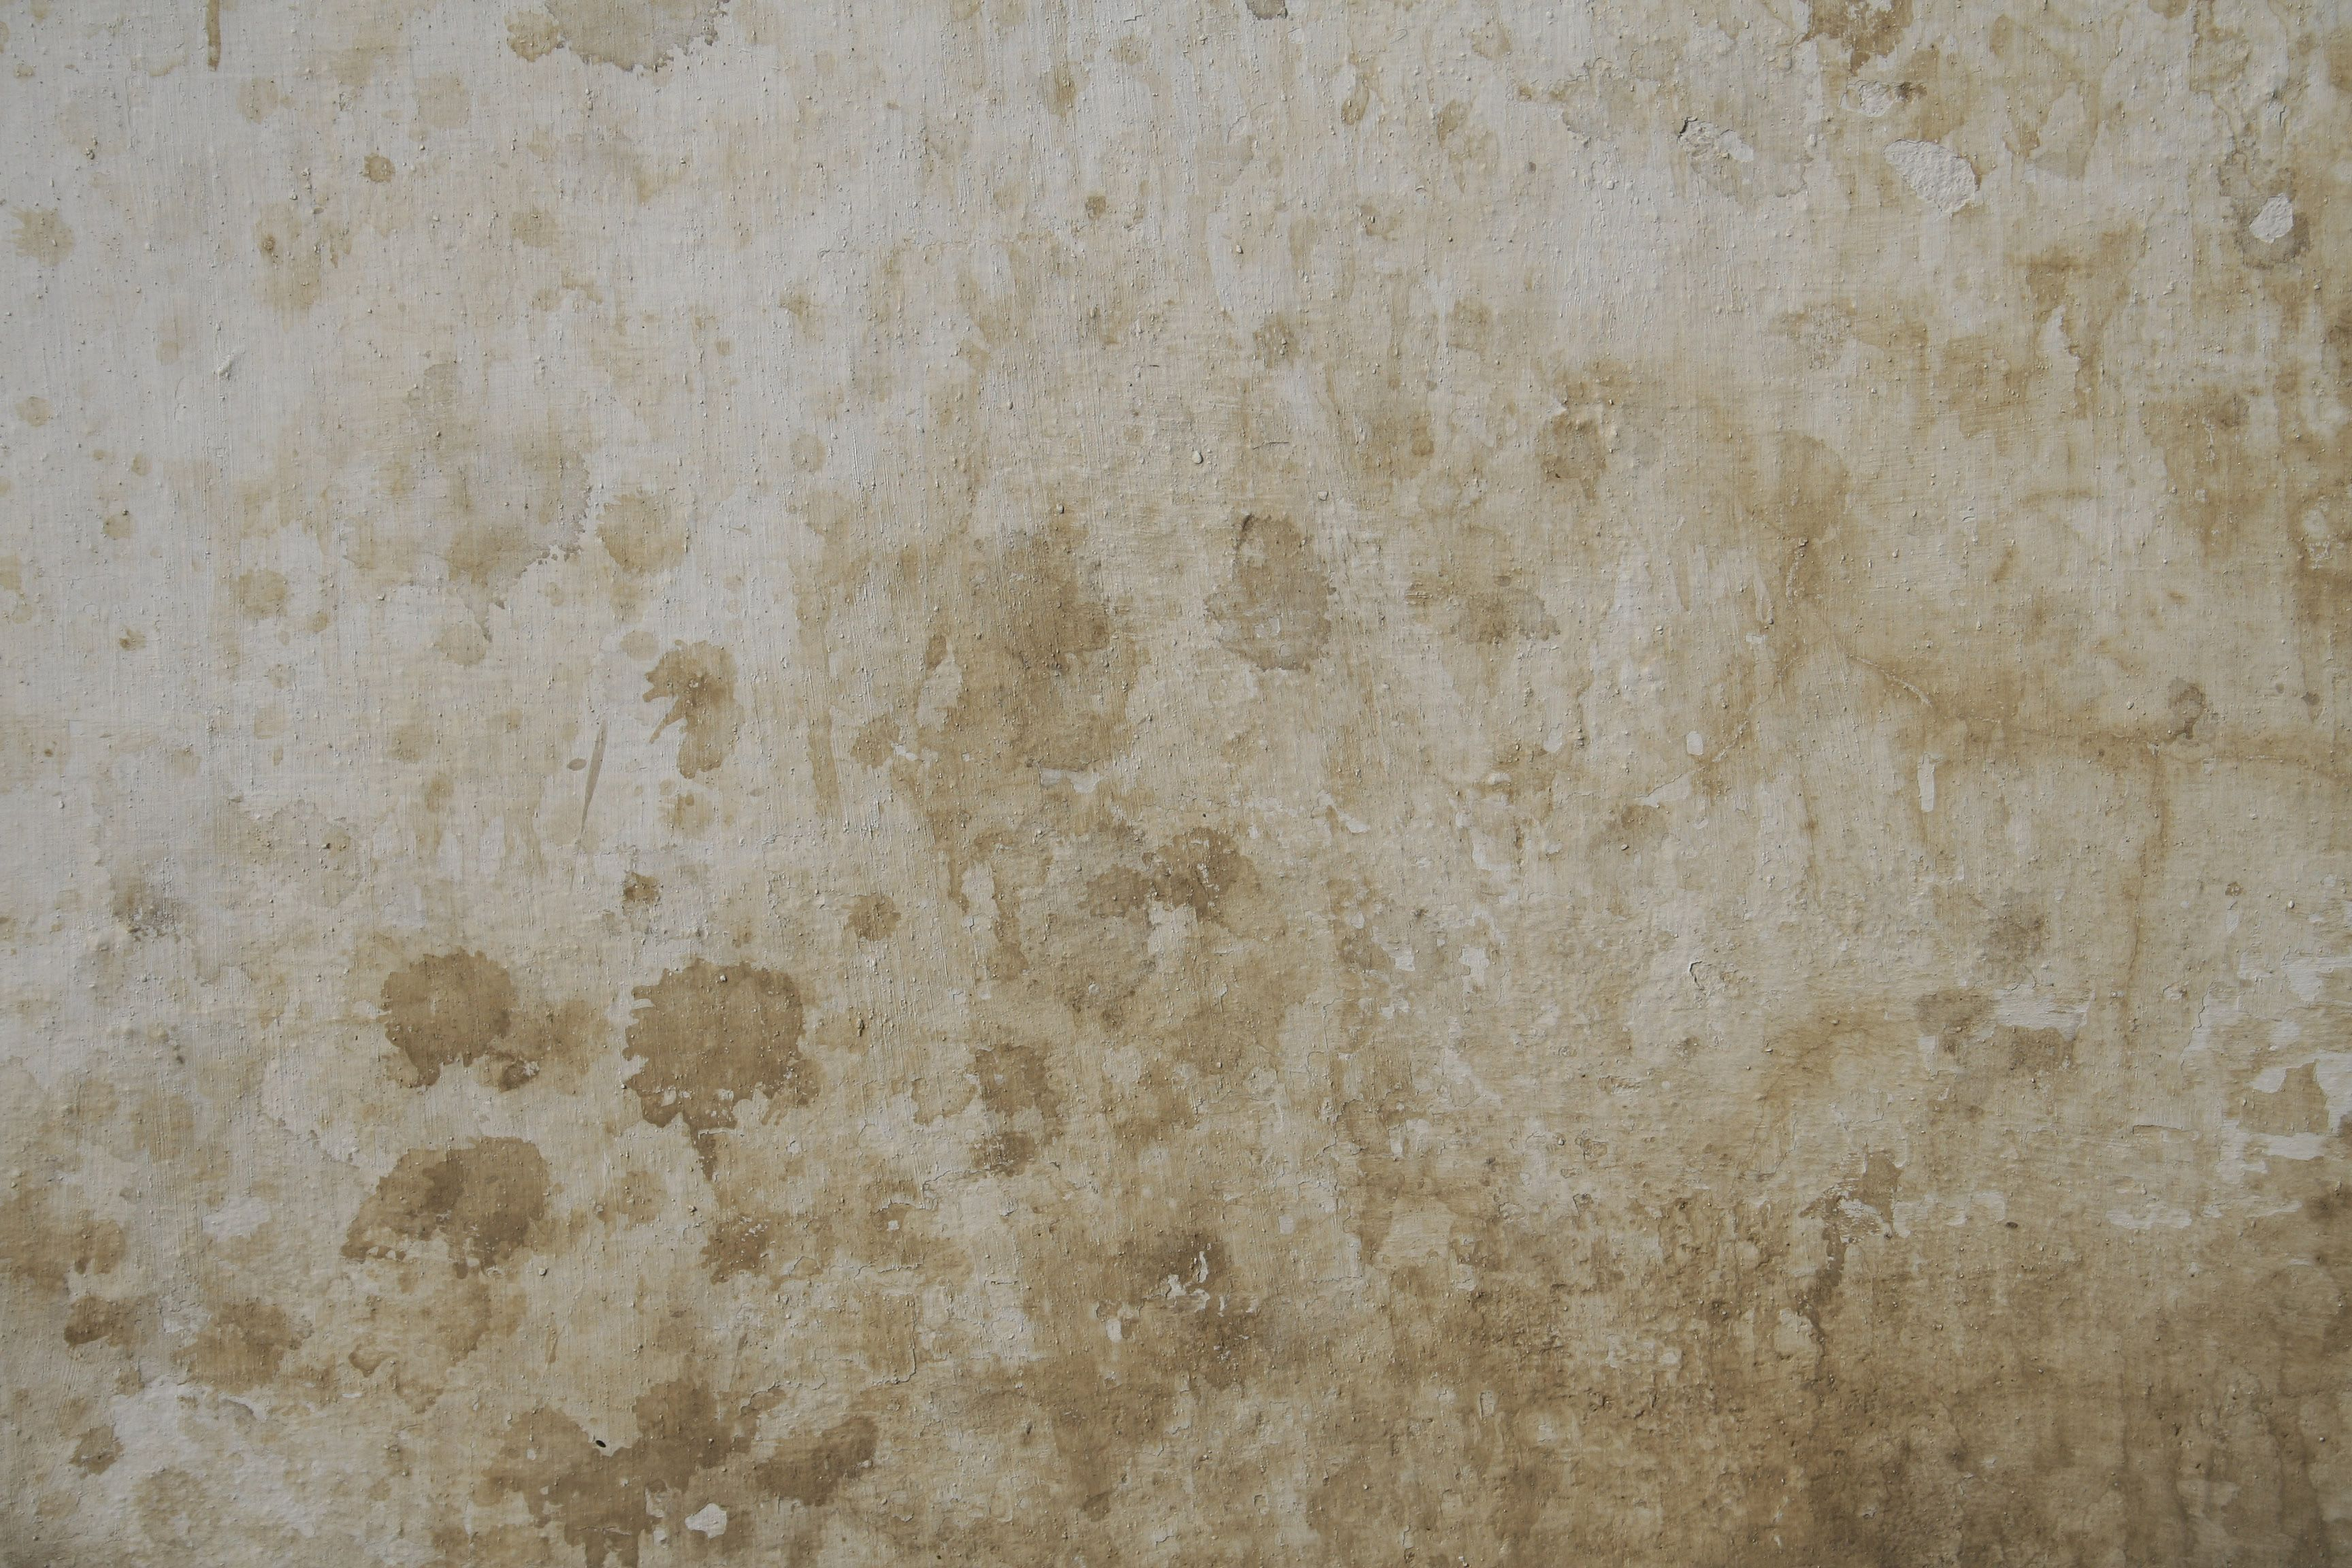 Free Texture, Best For Photoshop